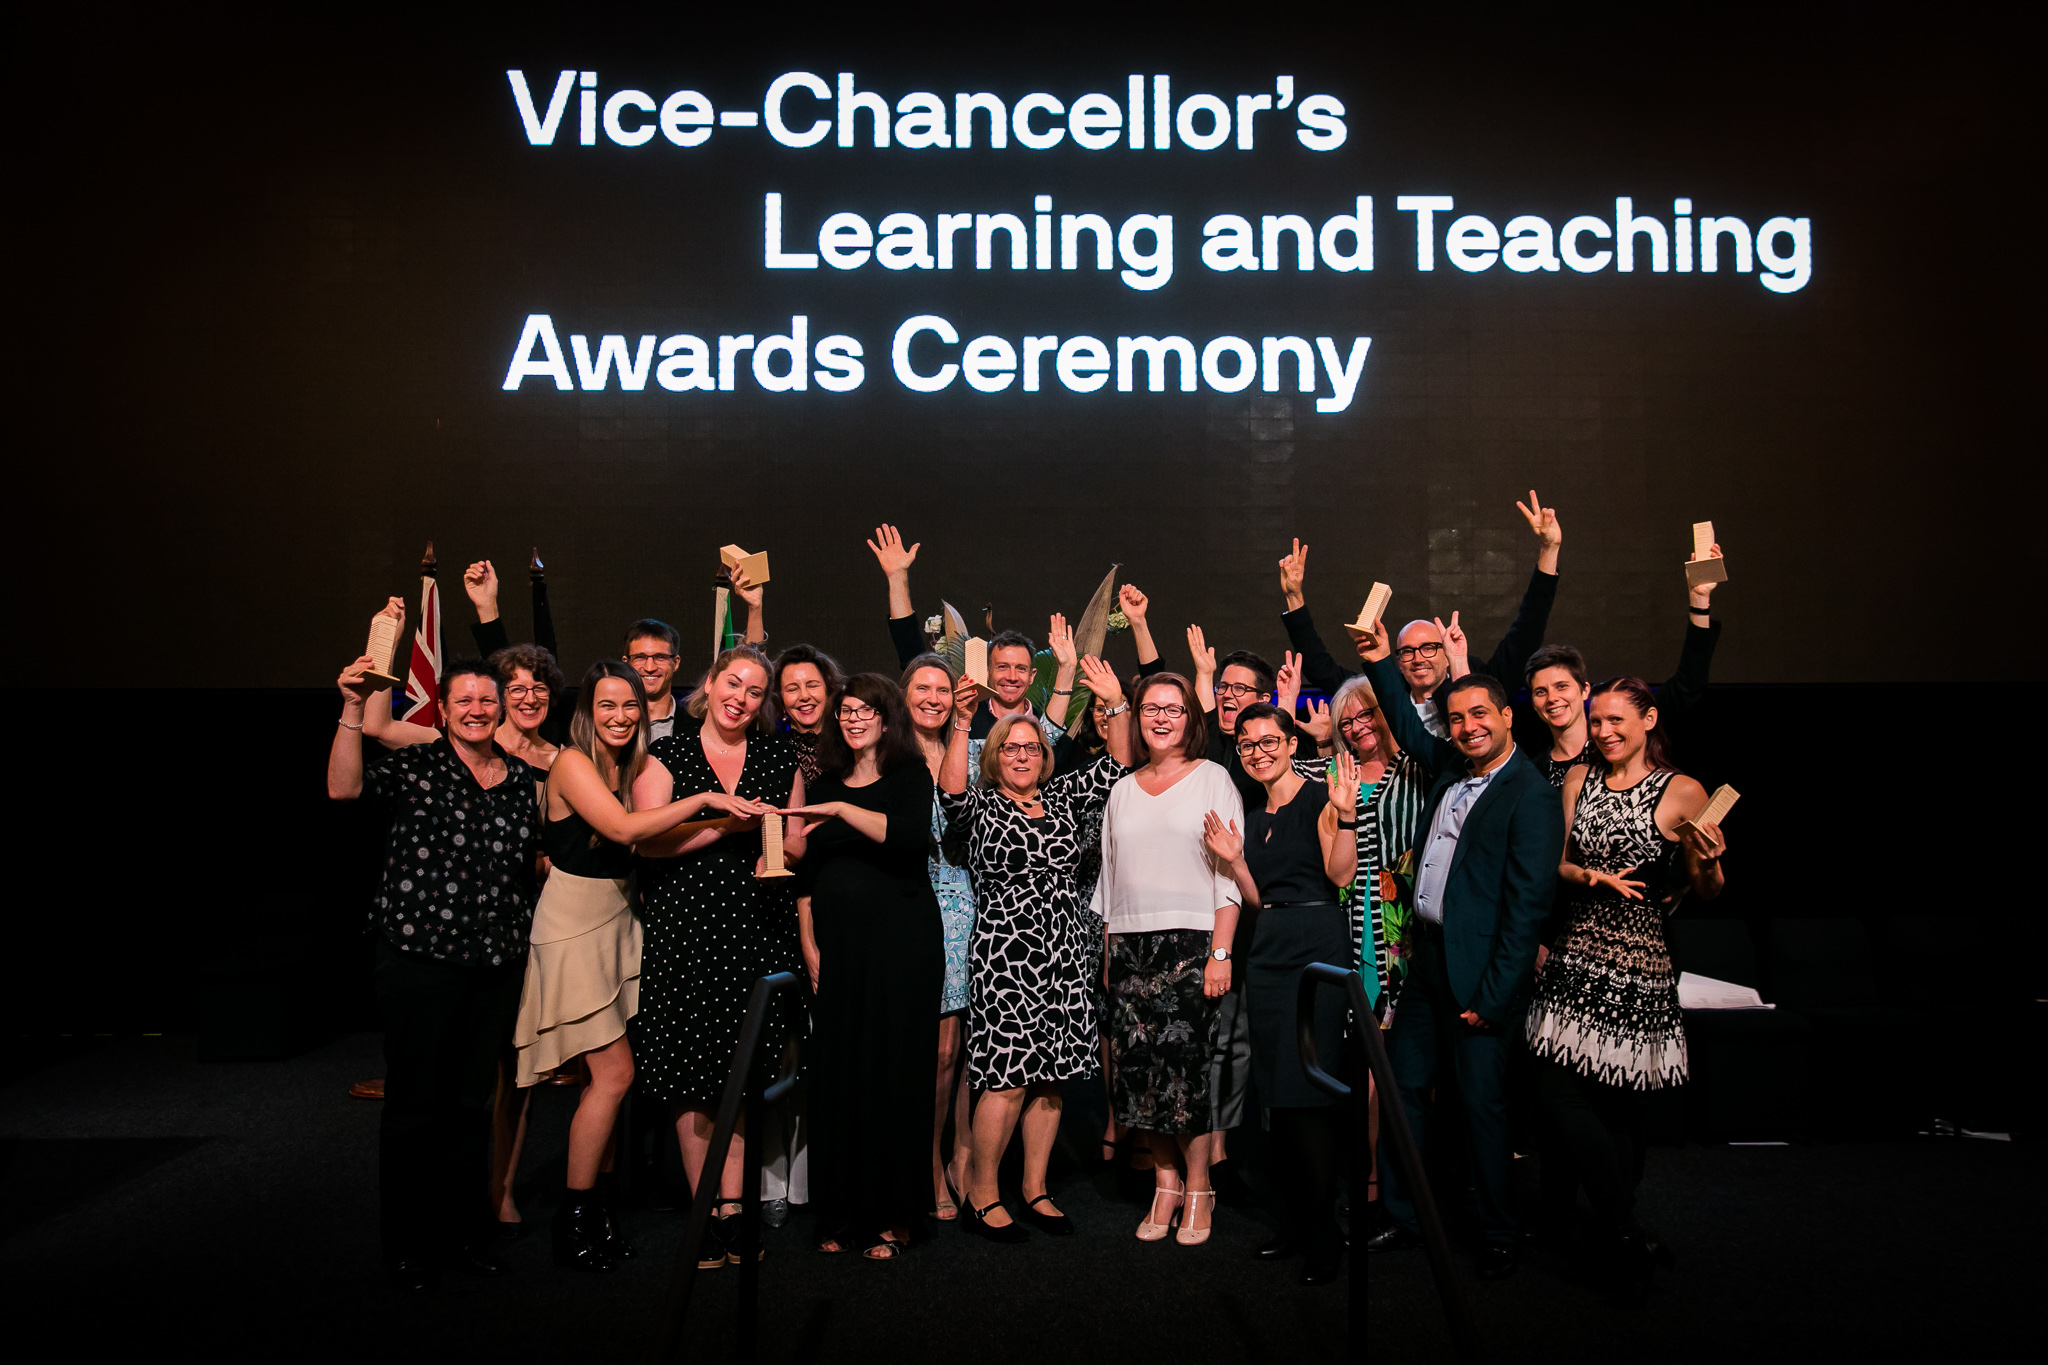 It's a wrap! Photos and video from the Learning and Teaching Awards Ceremony